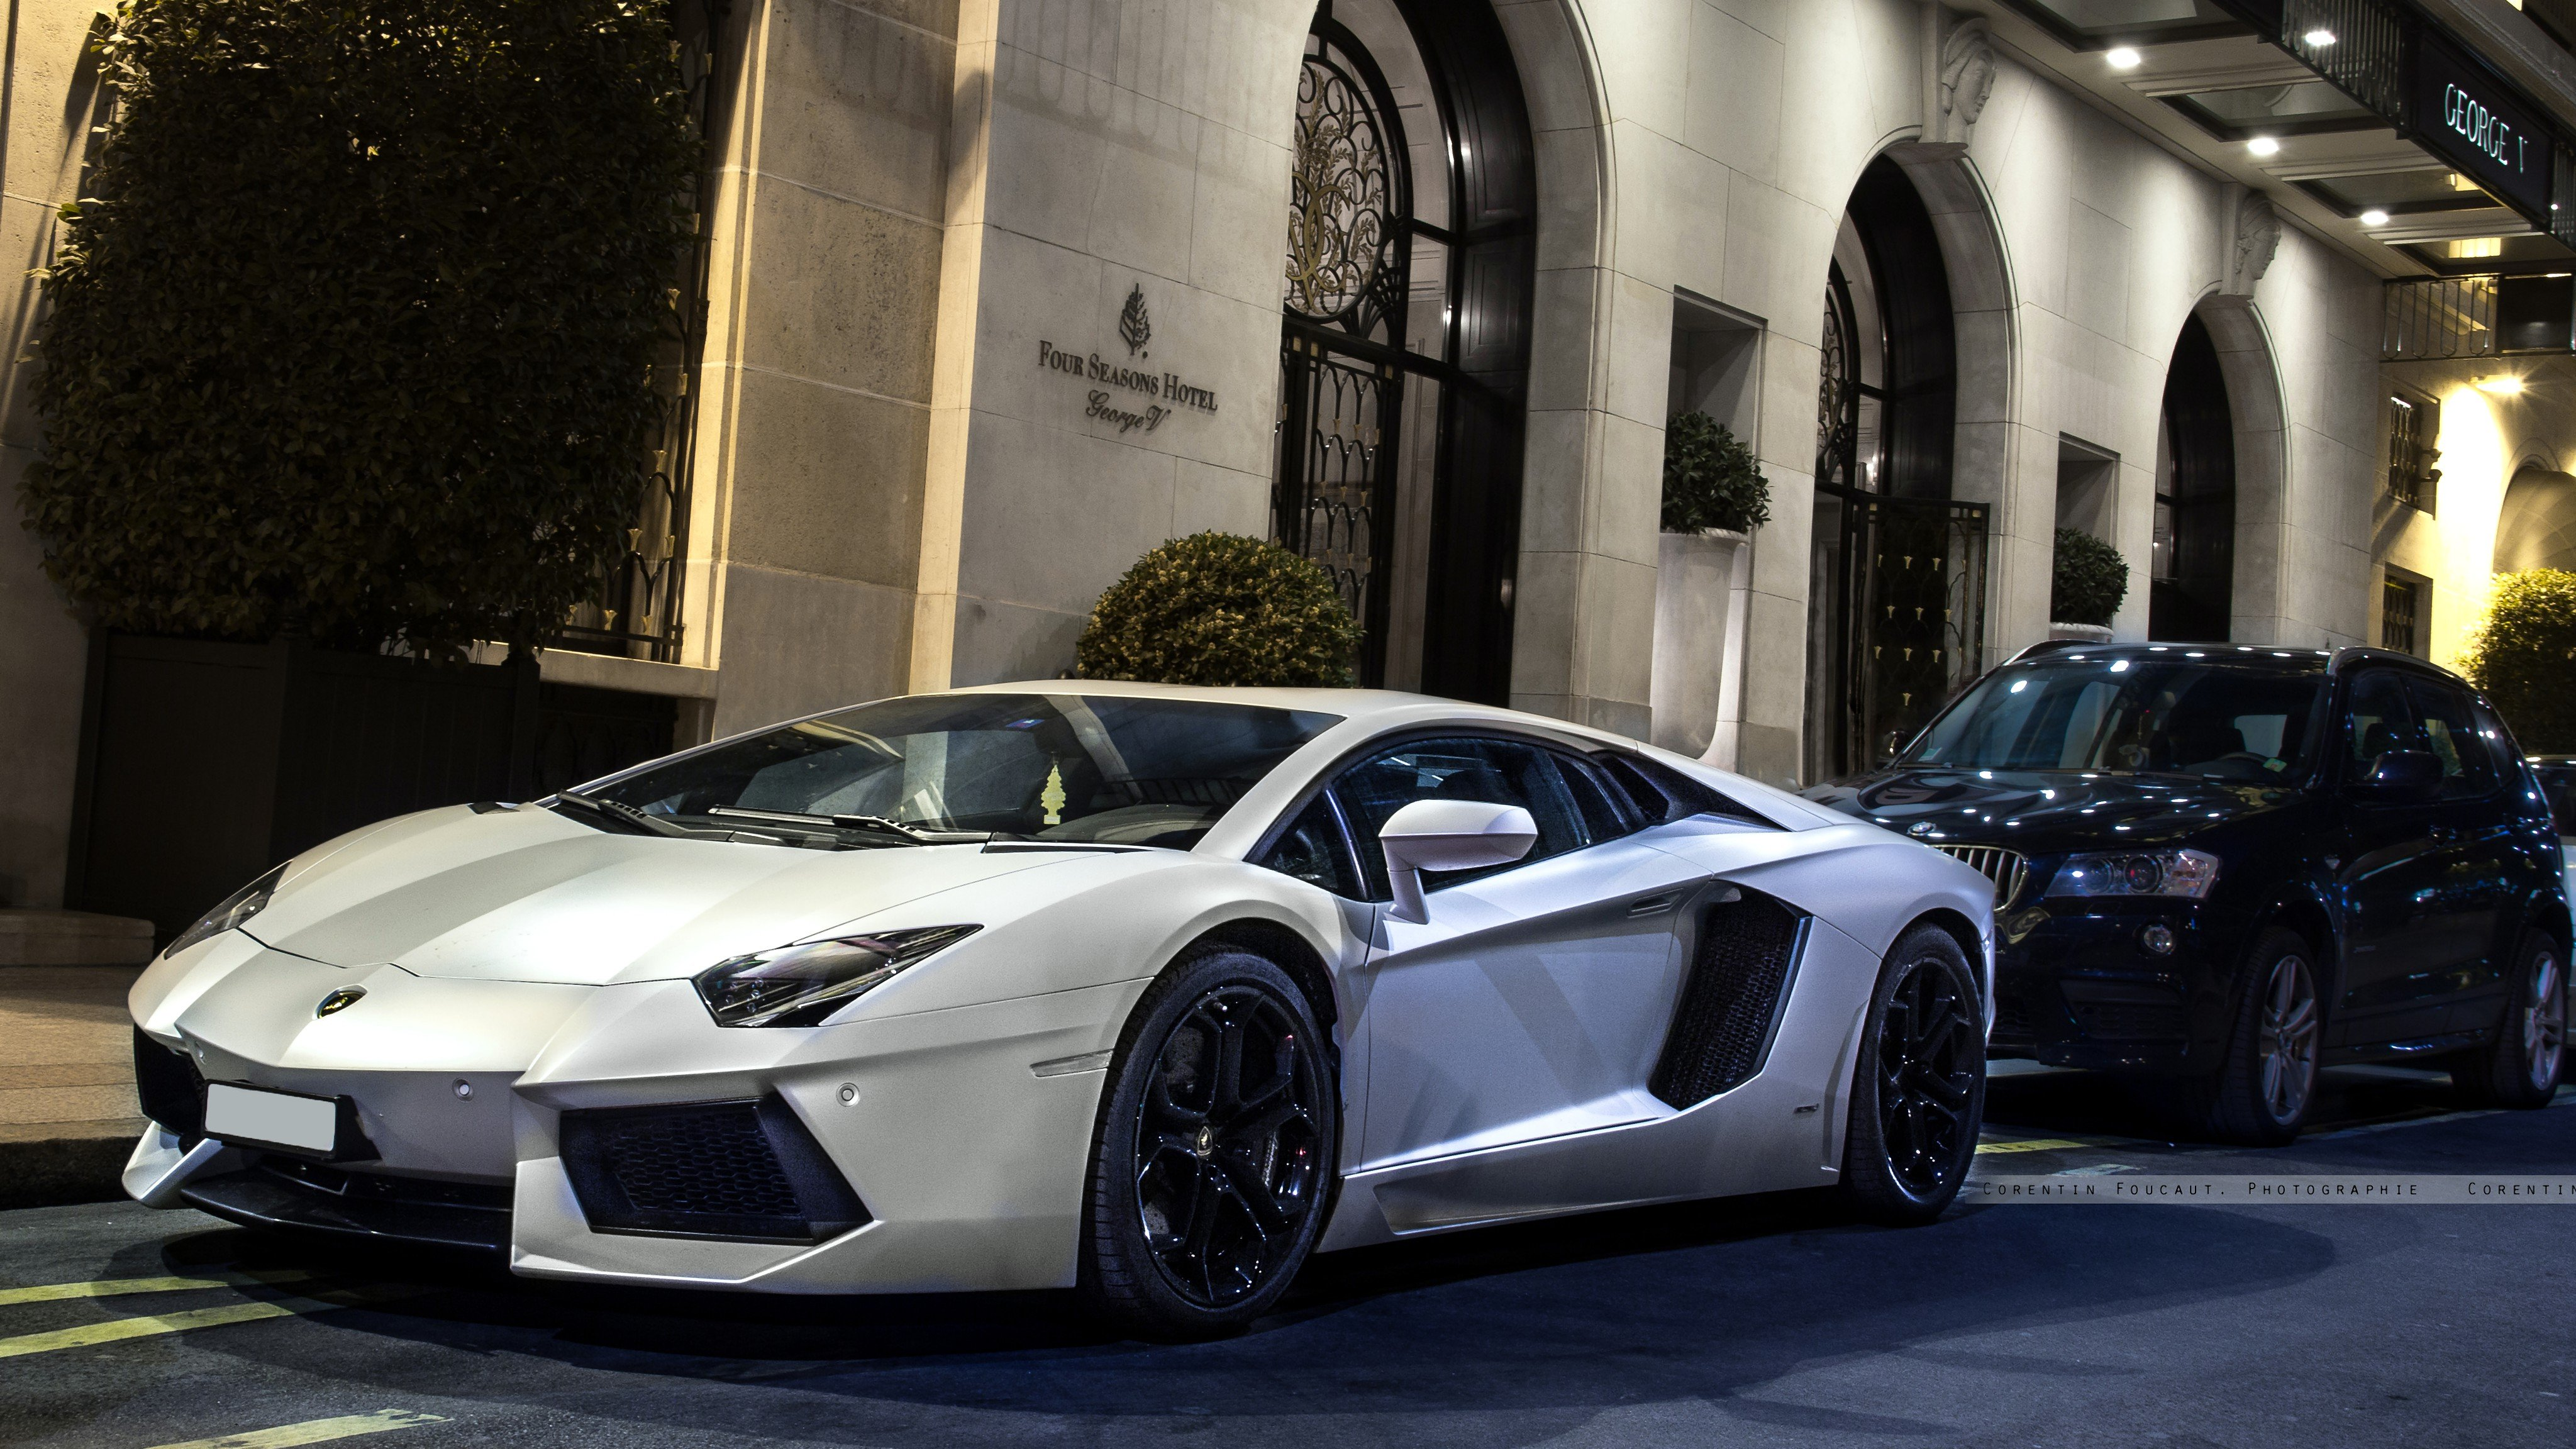 Lamborghini Aventador pictures on HD wallpapersOnly model Aventador 4096x2304